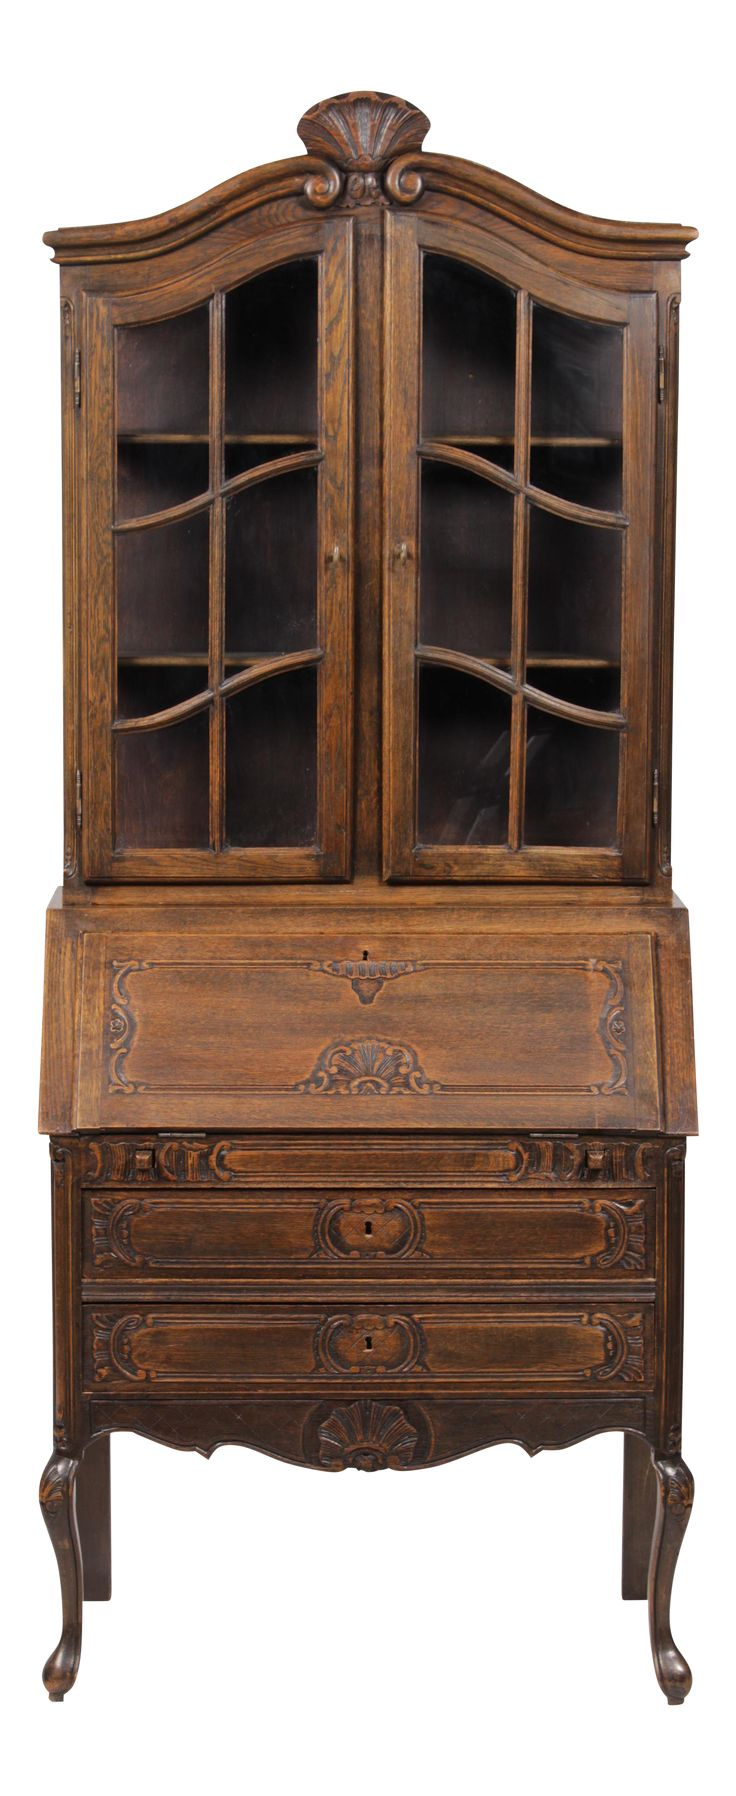 1930s Belgian Louis XV-Style secretary made of solid oak featuring a blend of carvings and style, lovely double doors with shelves behind for display of books or china topped by a large carved shell and scrolls, base continues multiple shell motifs on drawers, legs and splay, secretary opens to reveal 5 letter drawers, base has 2 large document drawers and cabriole feet, key included.